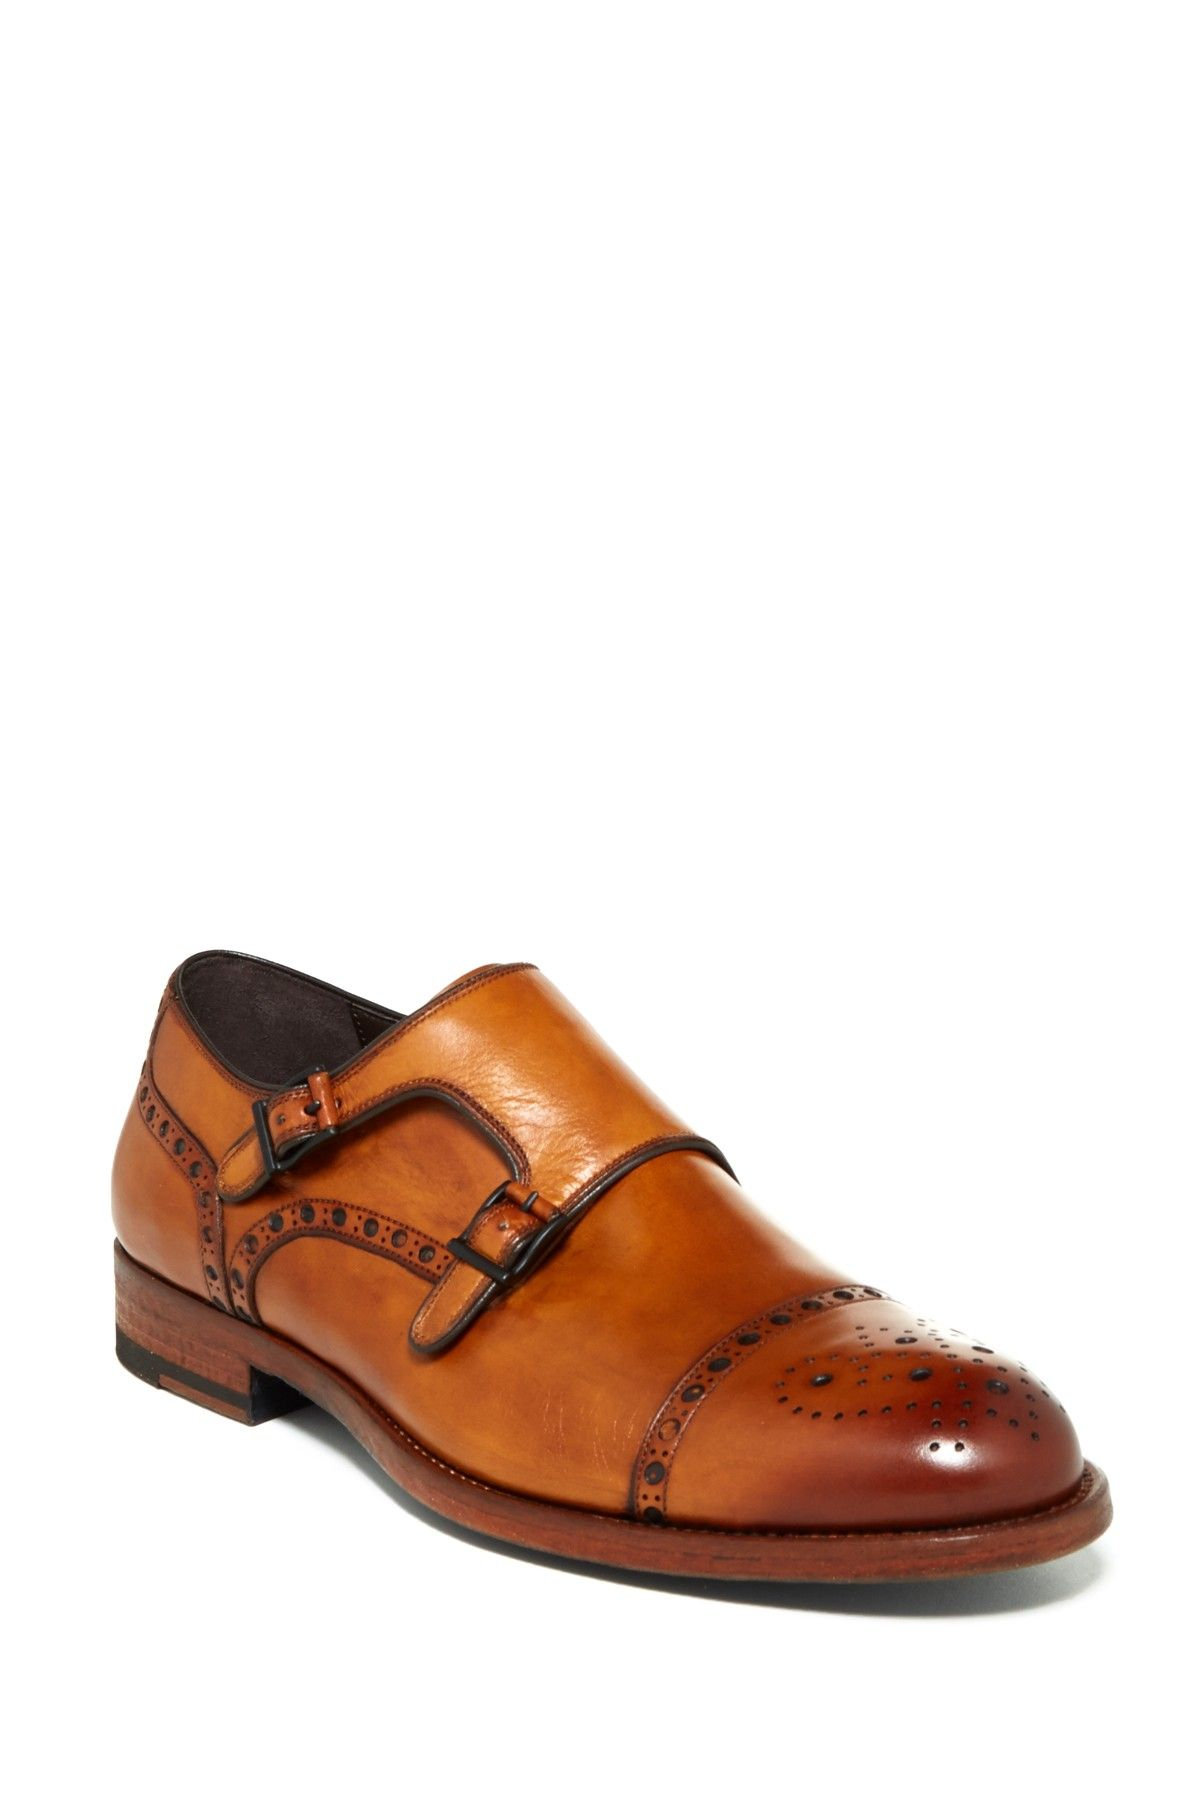 2f1c9e40ff0 Tauro Brogue Double Monk Strap Shoe by Magnanni on  nordstrom rack ...